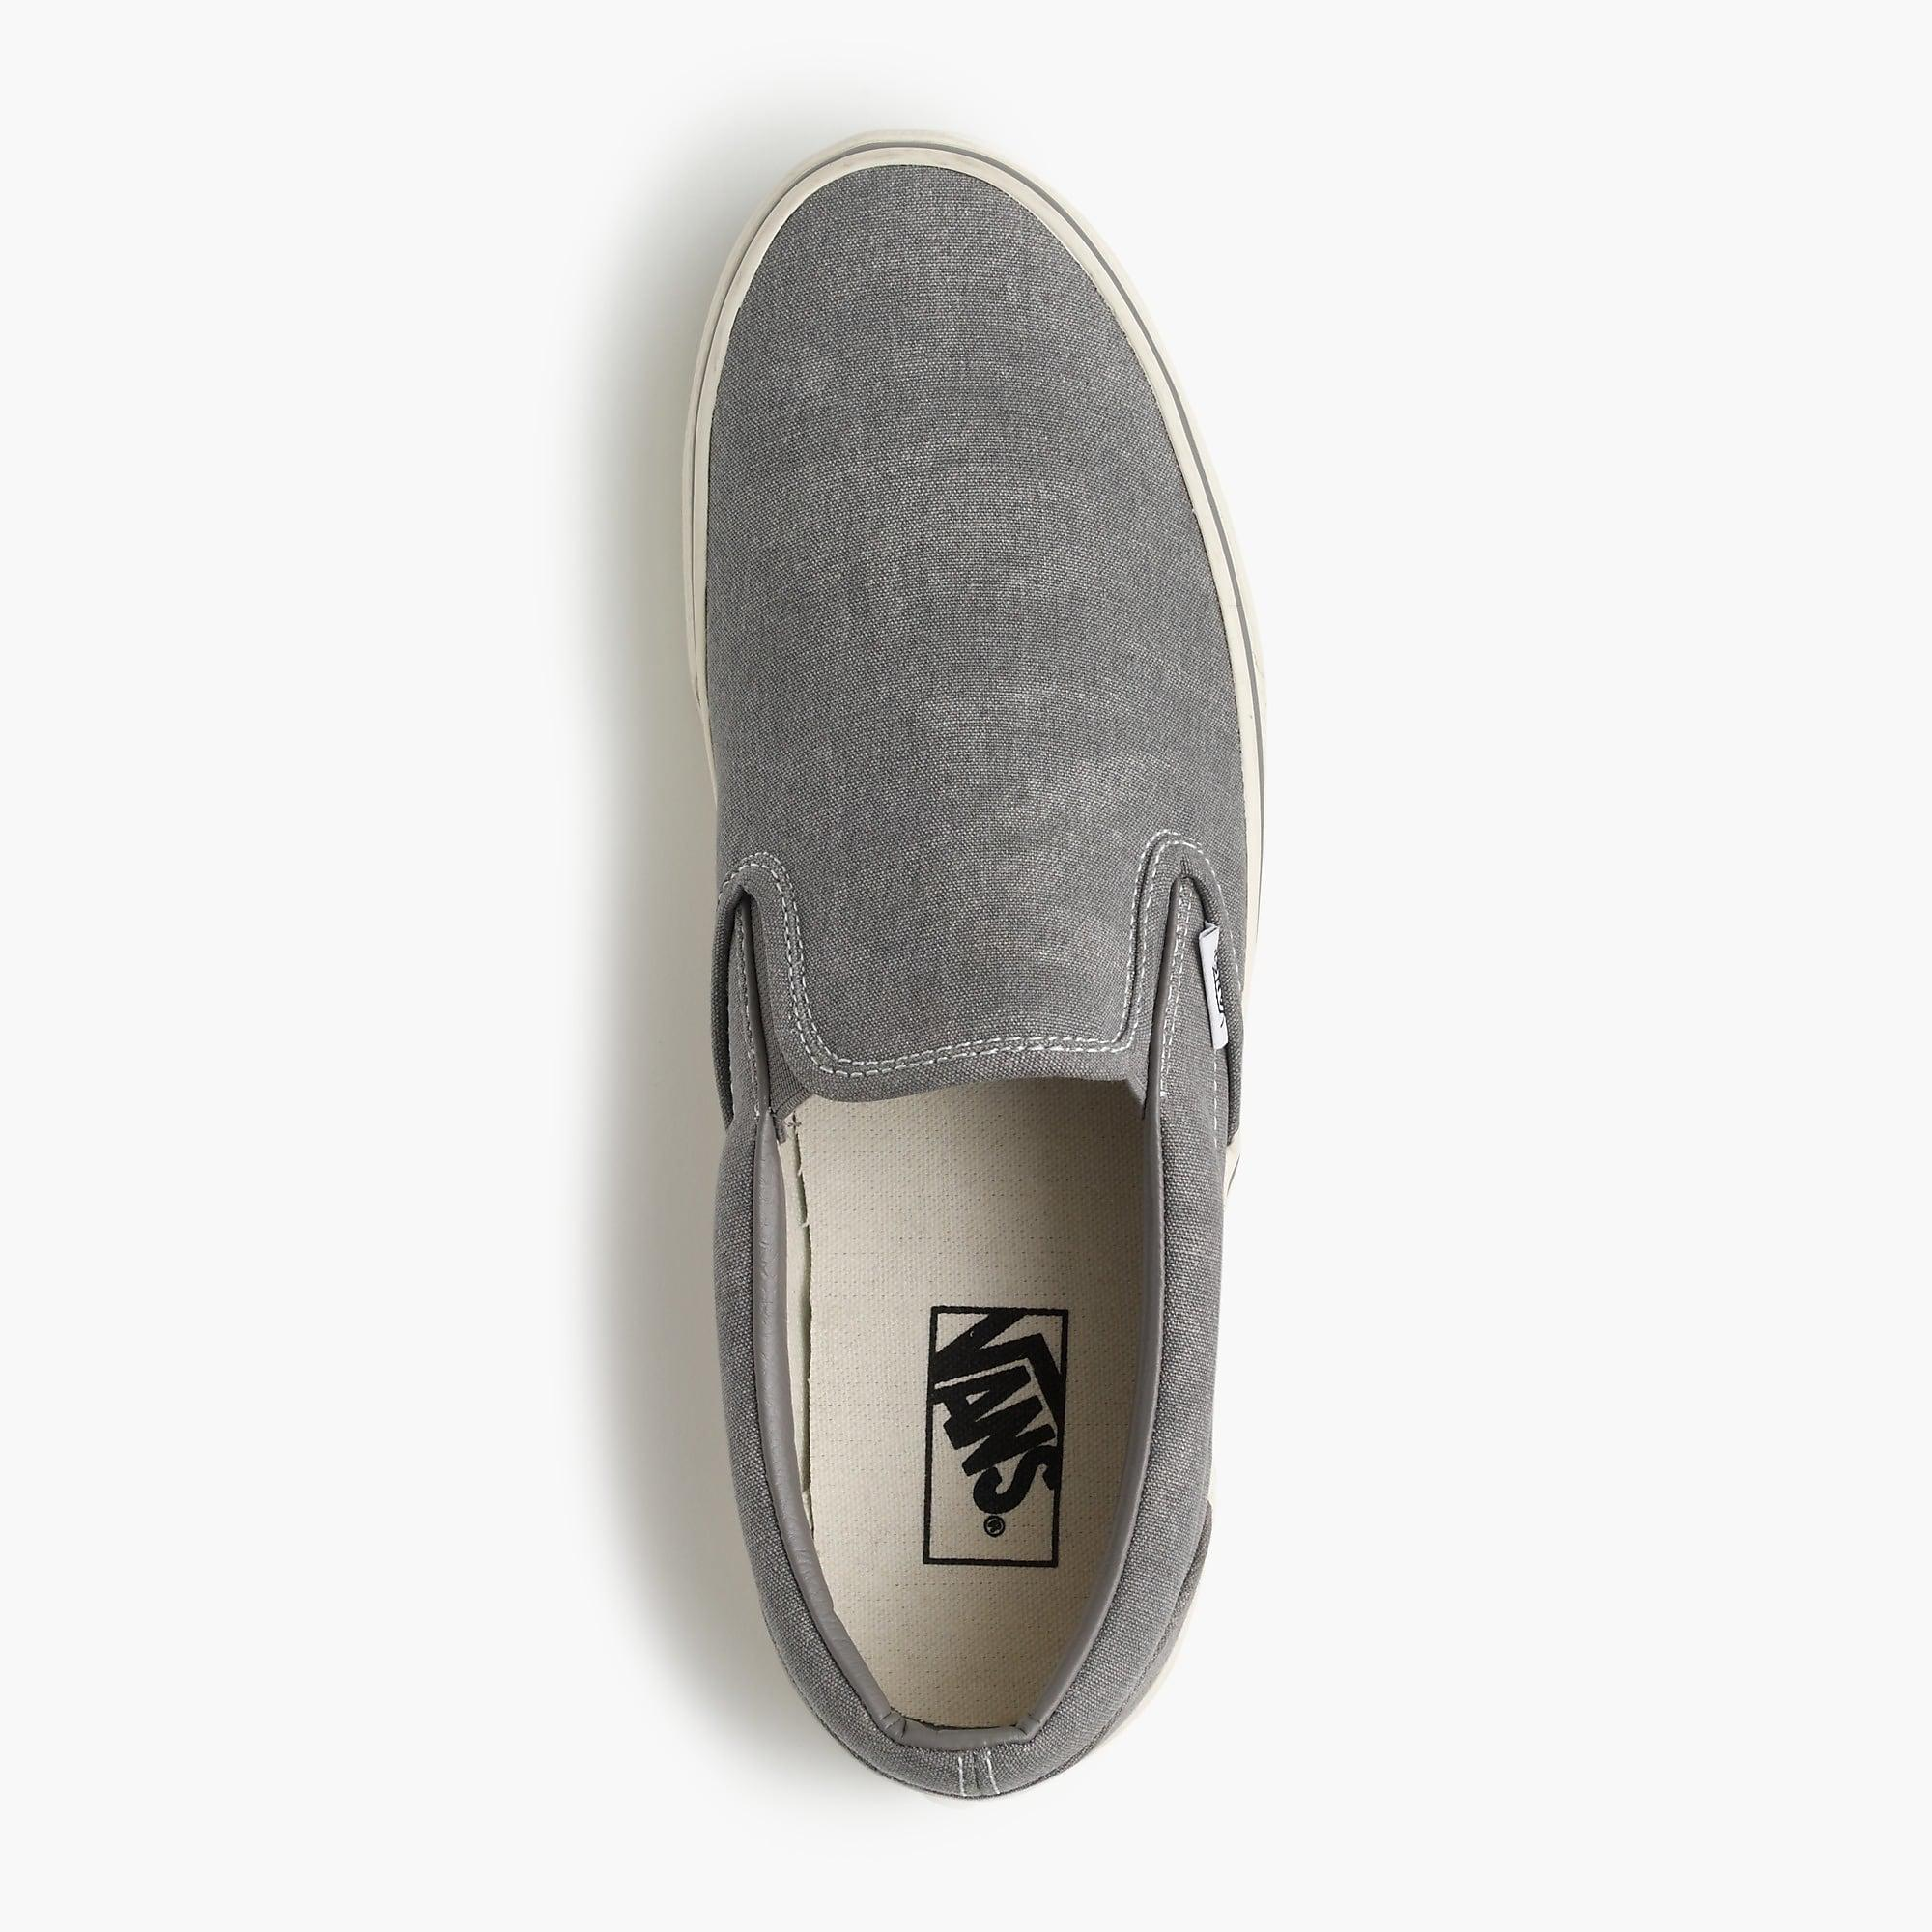 9a3b1faf808 Vans. Men s Metallic Washed Canvas Classic Slip-on Sneakers.  60 From J.Crew